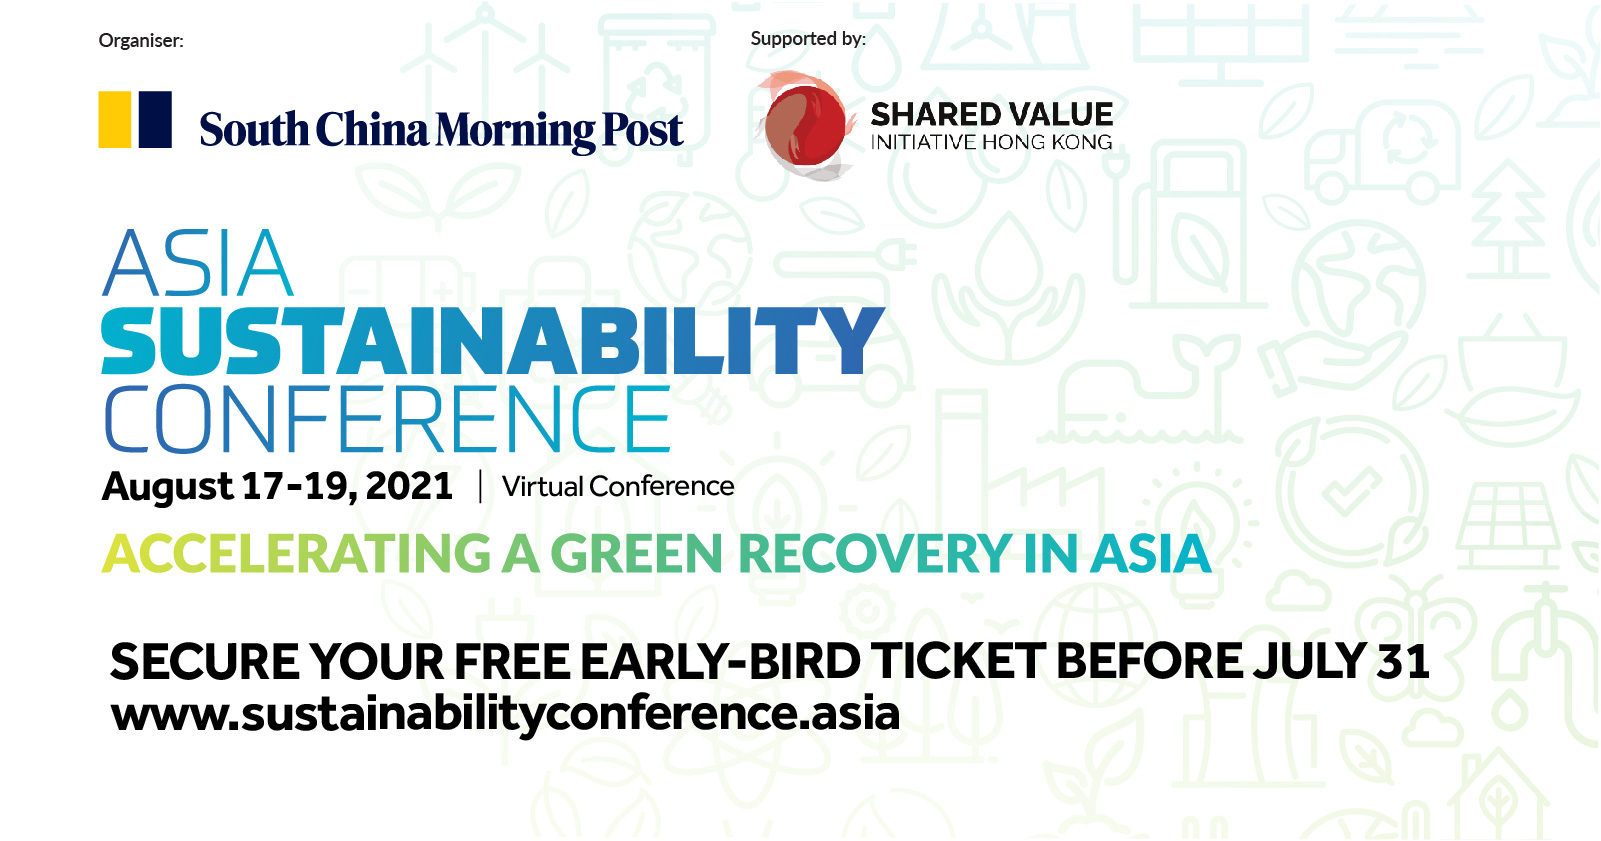 SCMP Asia Sustainability Conference